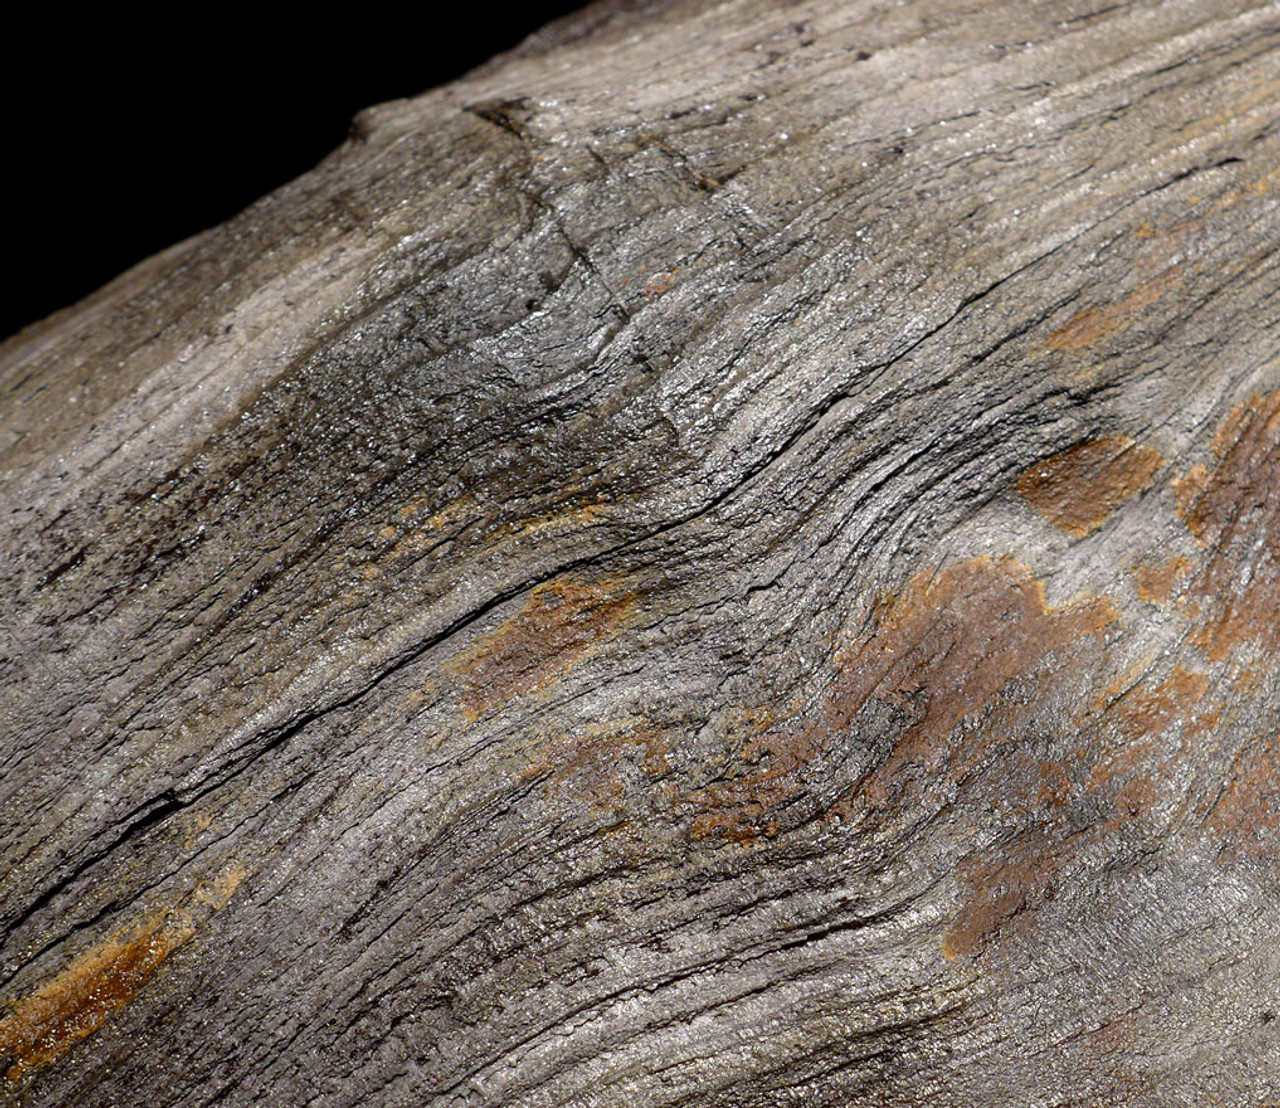 PL144 - INCREDIBLE MIOCENE FOSSILIZED WOOD GRAIN PETRIFIED PERMINERALIZED LOG FROM EUROPE